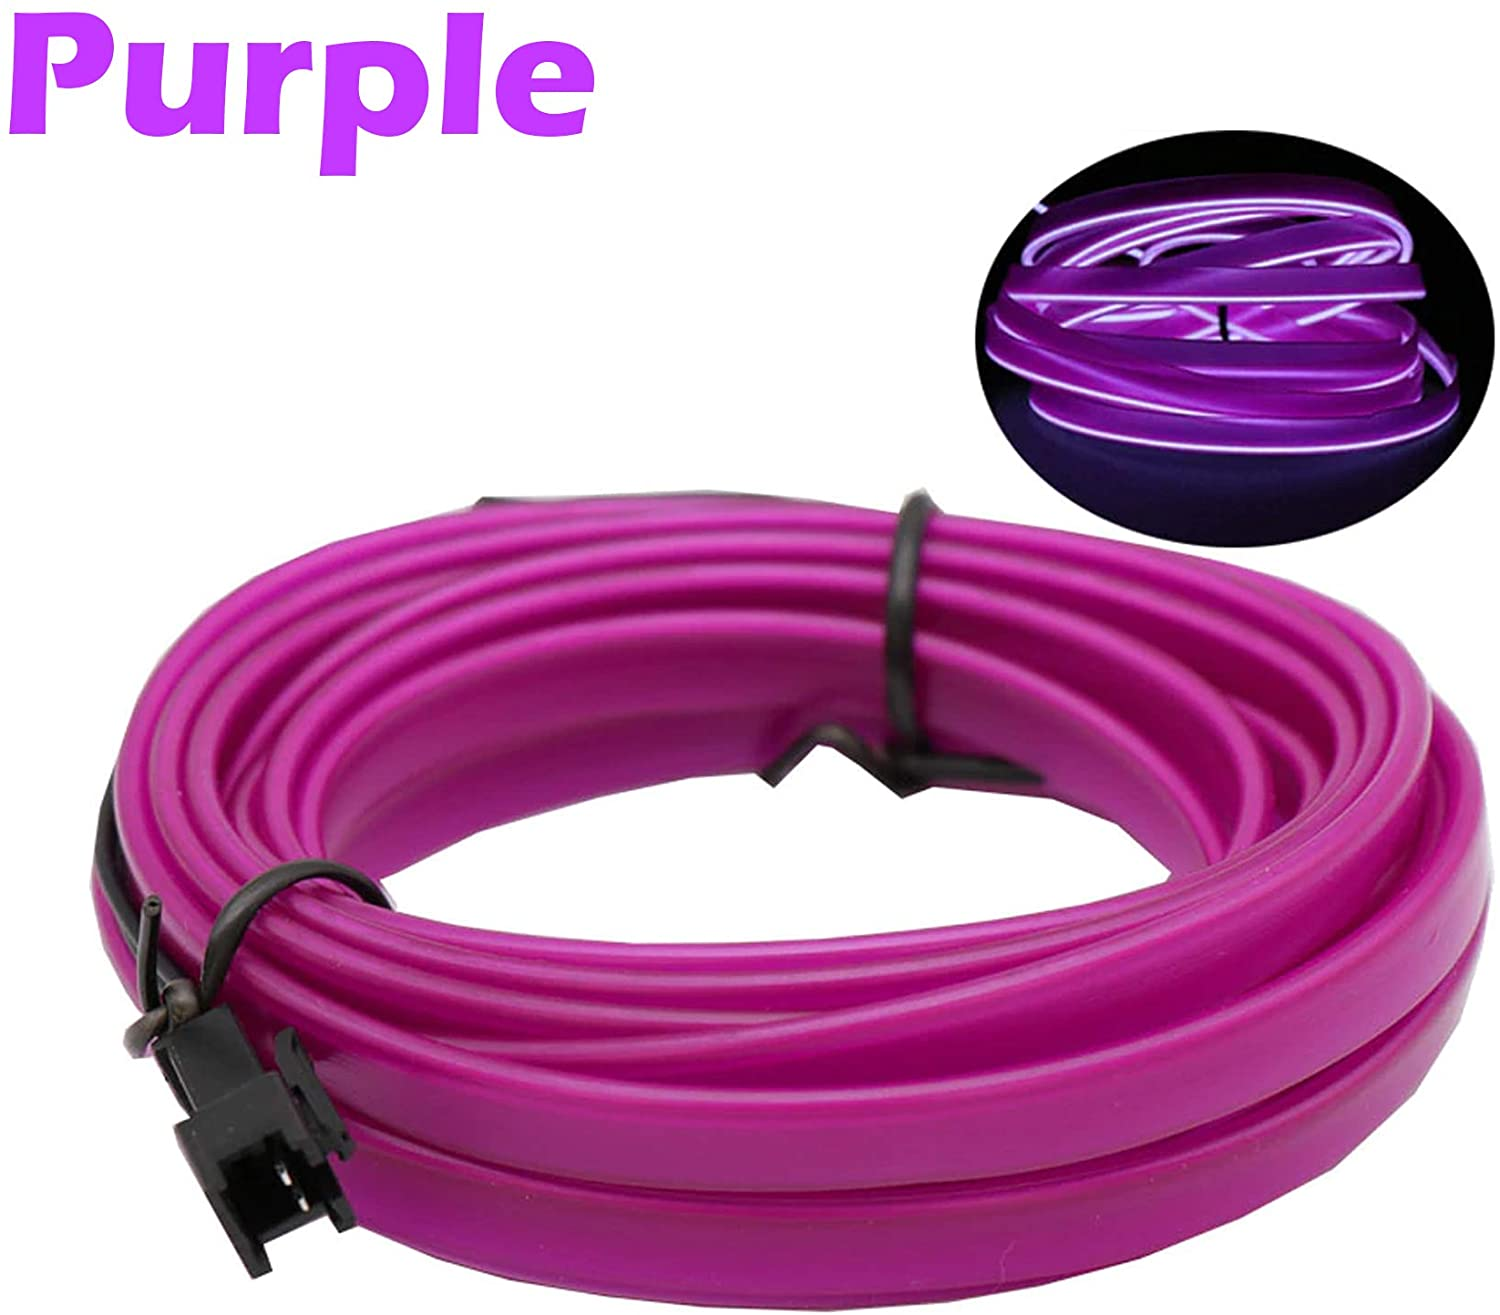 1-Pack 20m/65.6ft Purple Neon LED Light Glow EL Wire - 2.3 mm Thick - EL Wire ONLY - Craft Neon Wire String Light for DIY Project Costume Accessories Cosplay